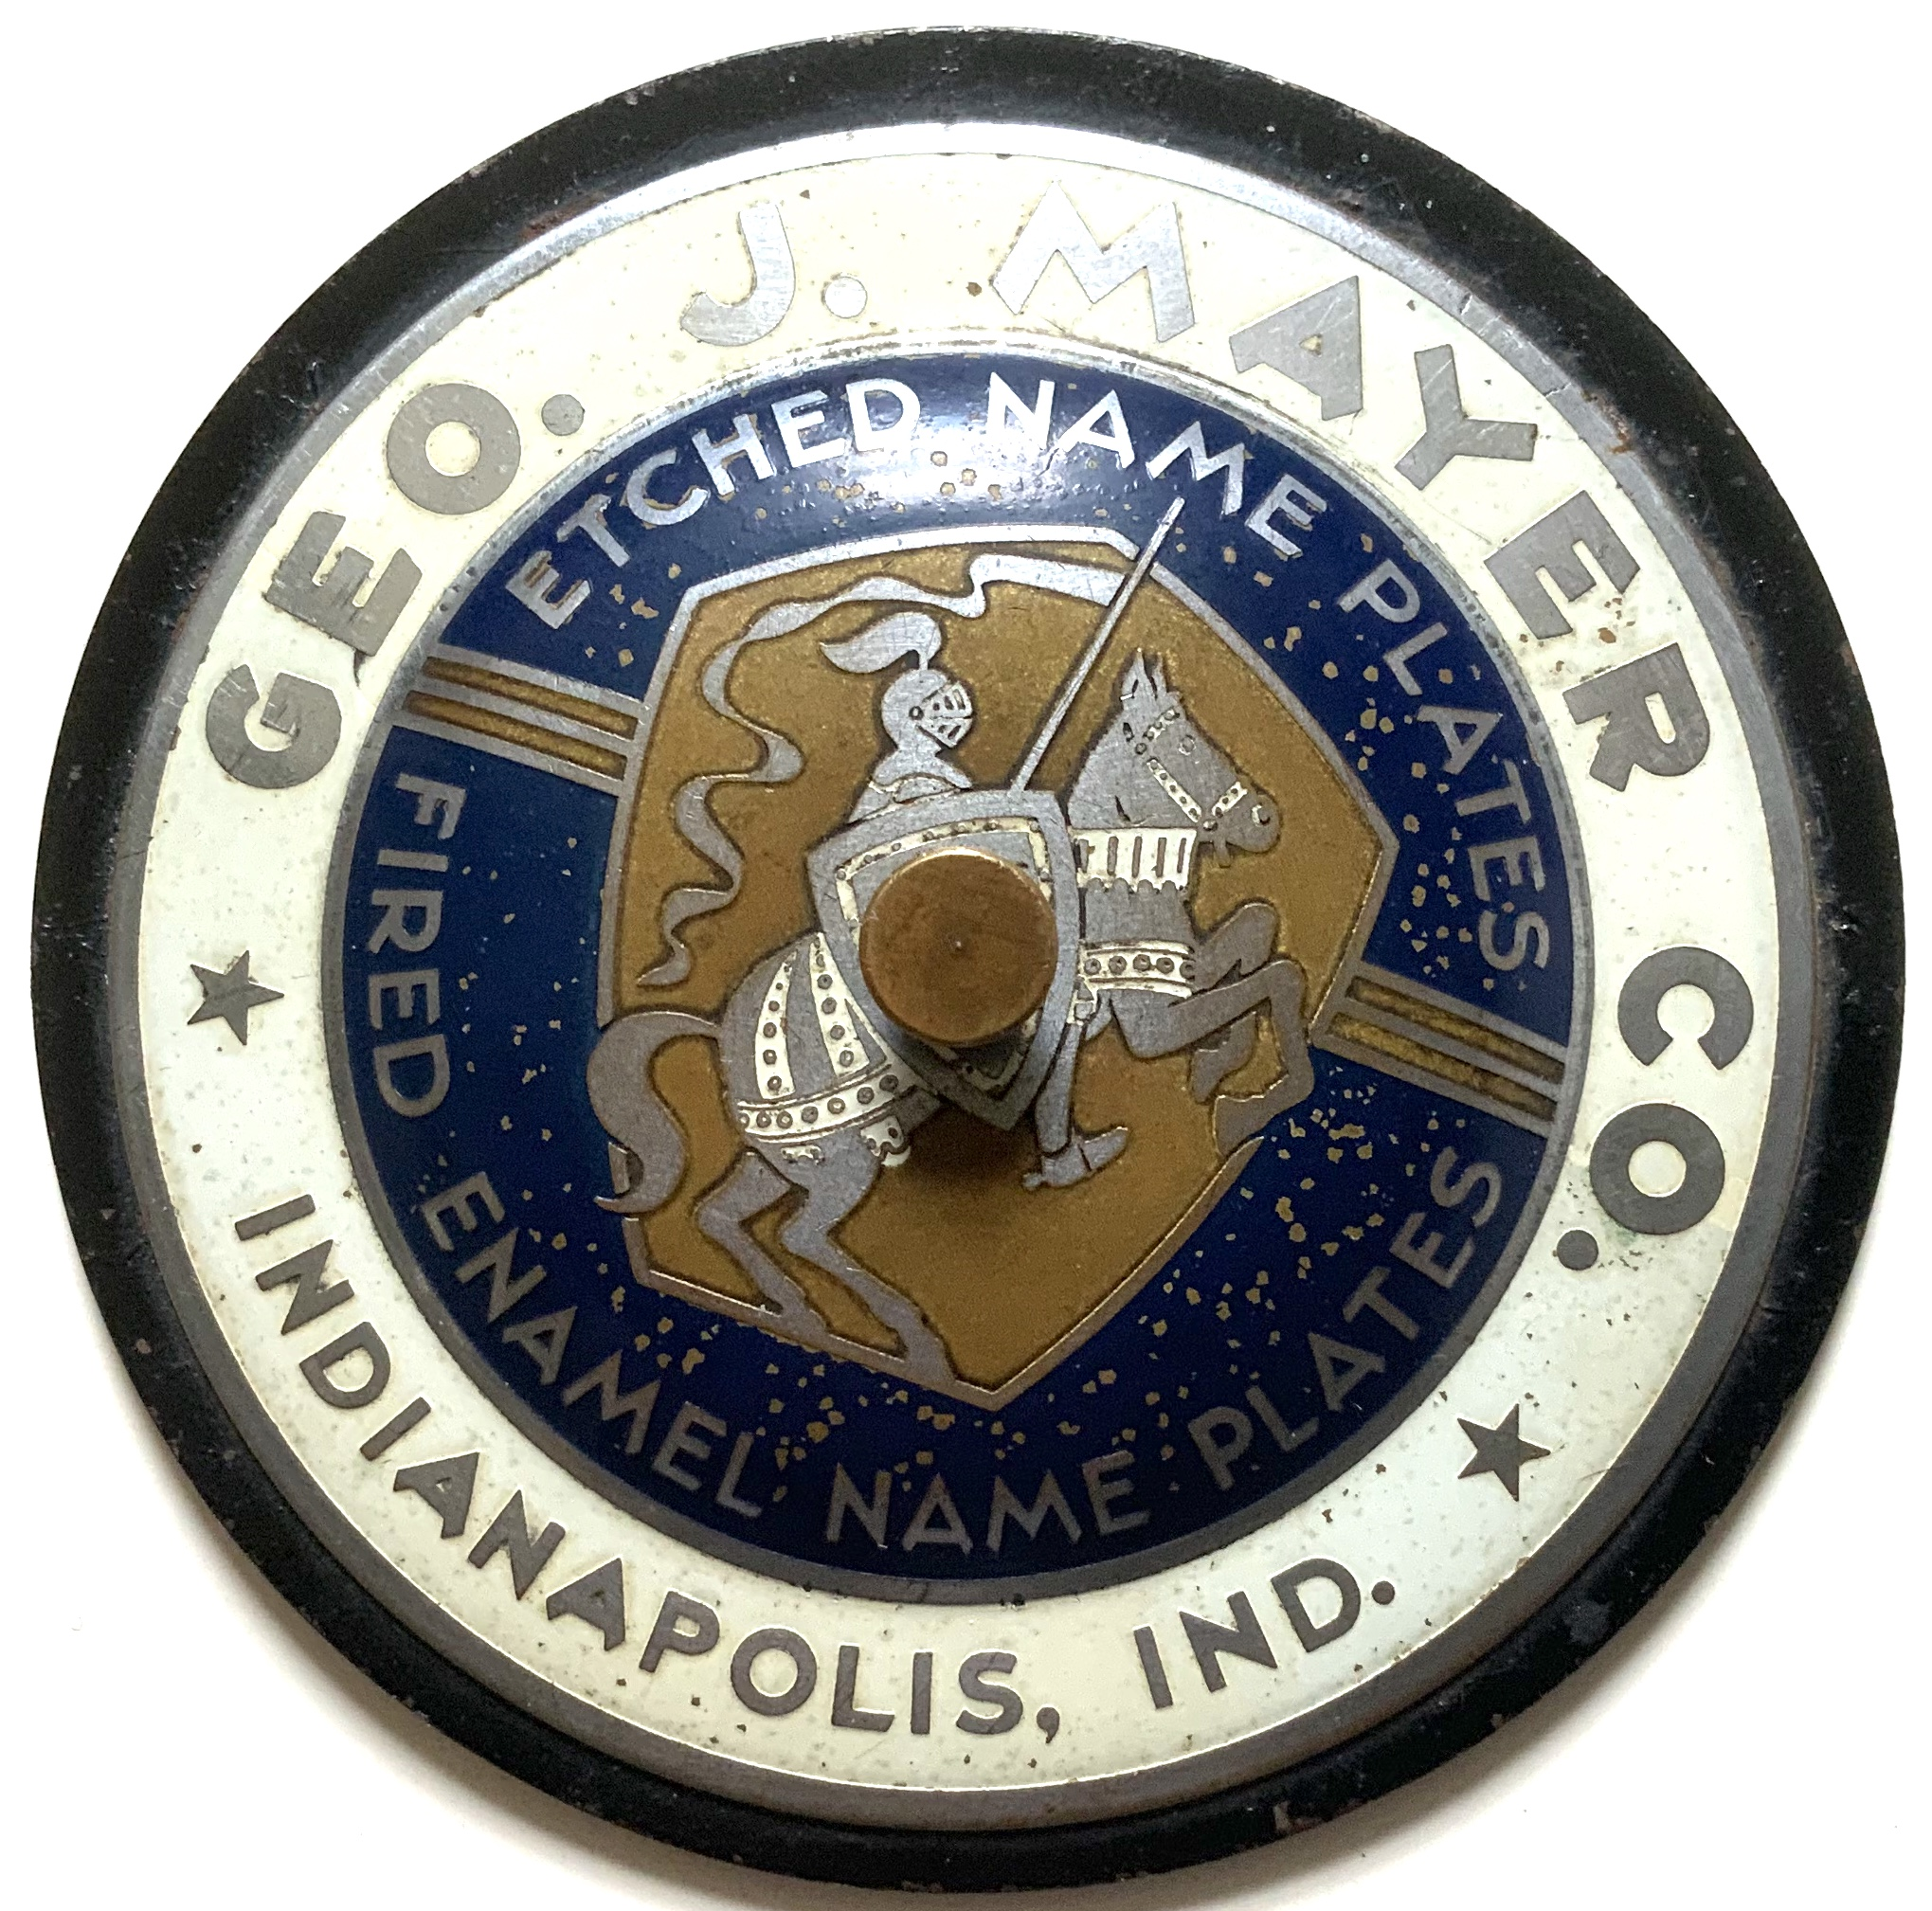 J695	GEORGE J. MAYER CO. SHERIFF'S BADGE MAKER - INDIANAPOLIS PAPERWEIGHT